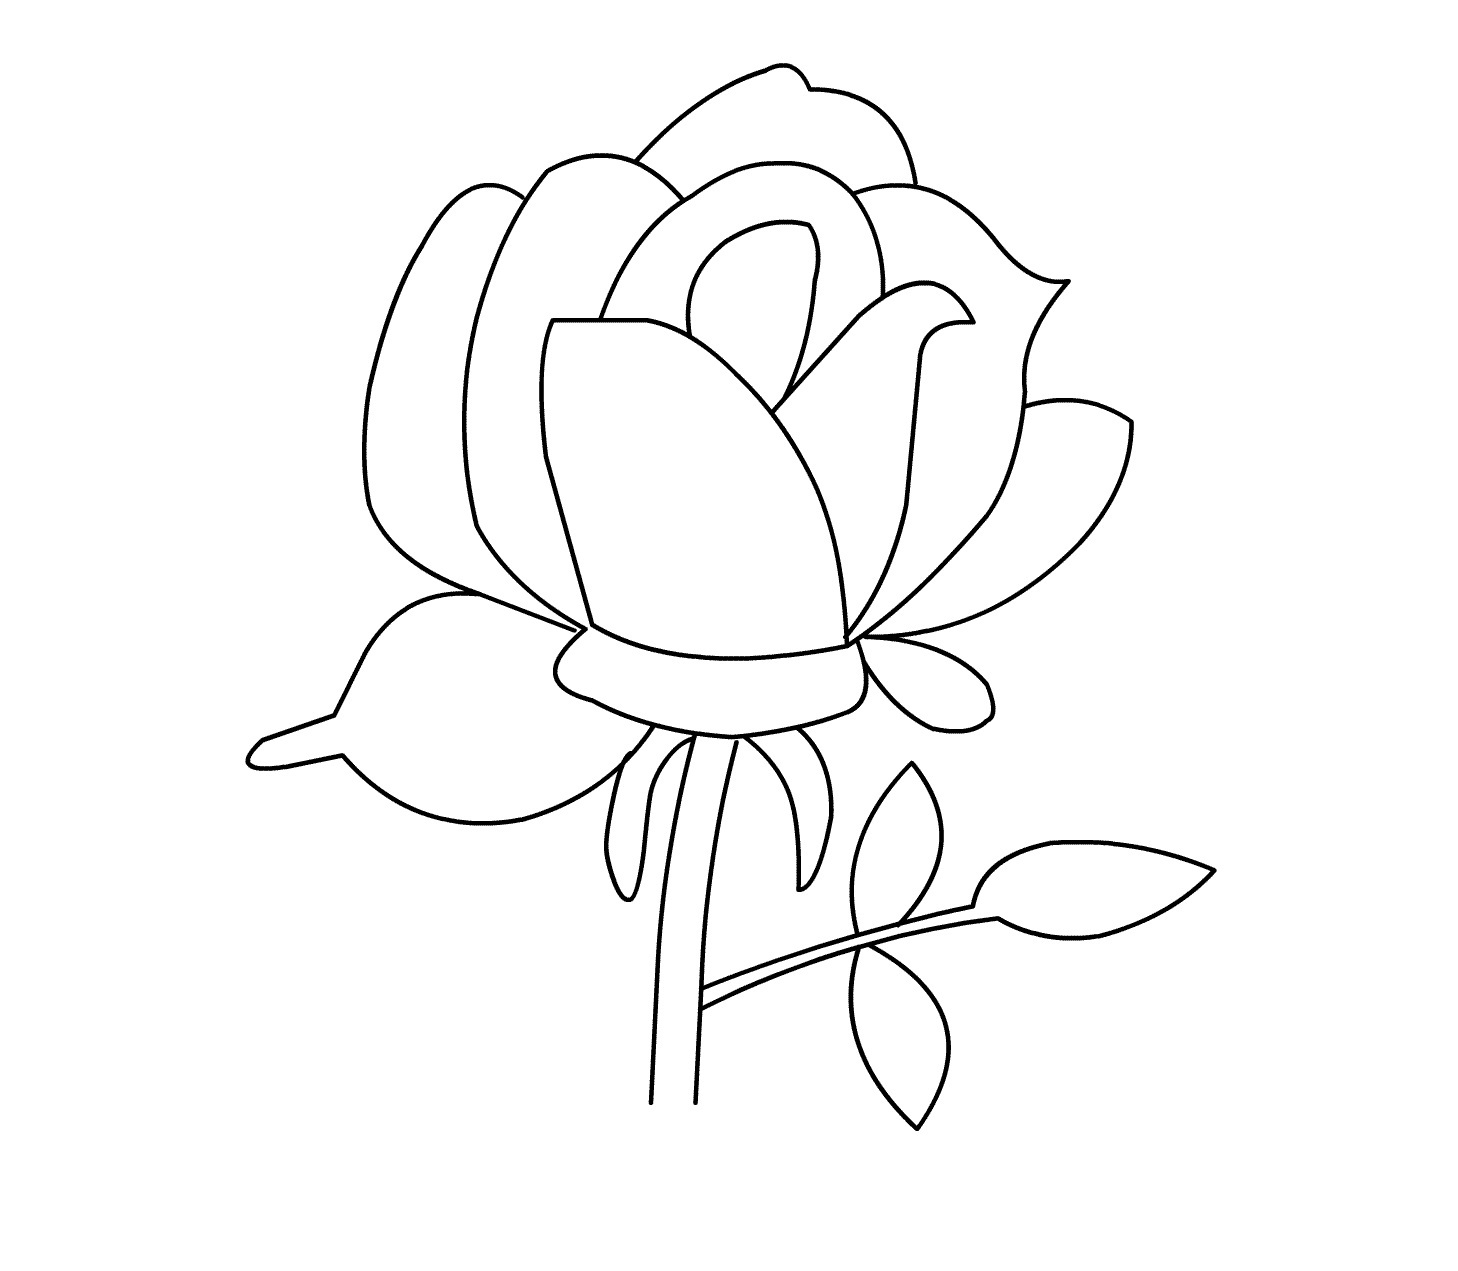 rose coloring pictures free printable roses coloring pages for kids coloring pictures rose